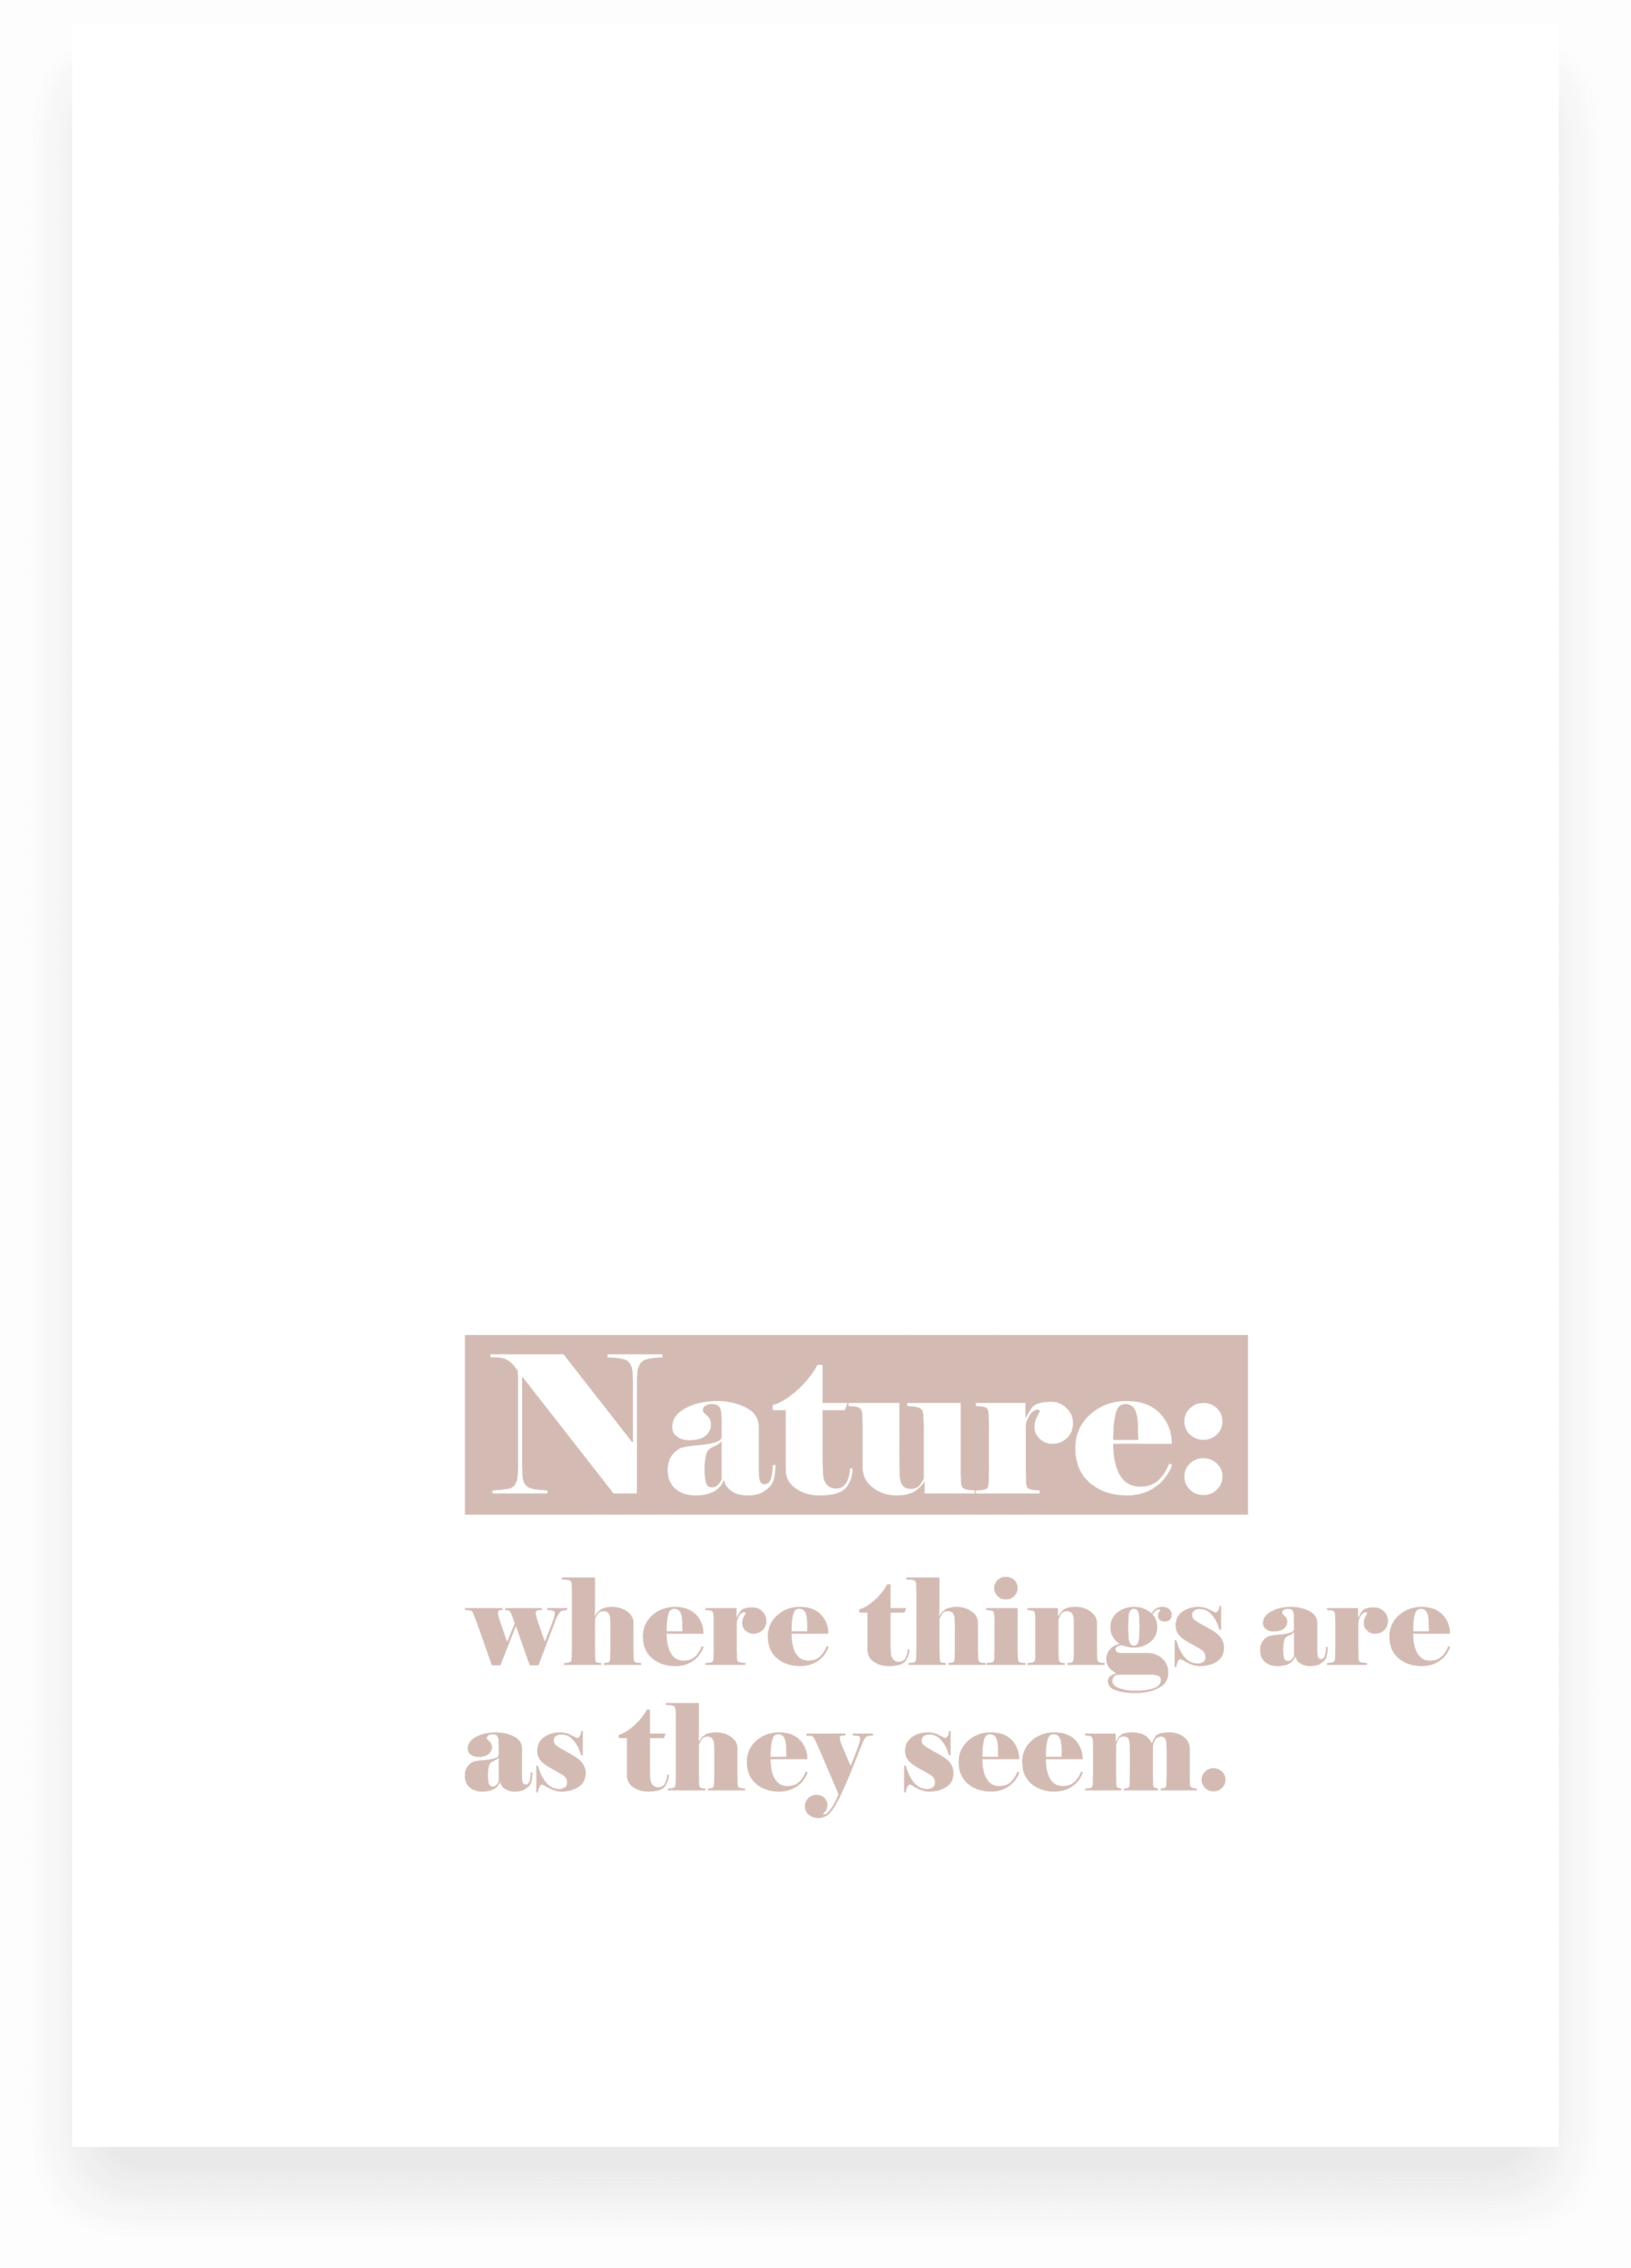 Prachtige verticale poster met de tekst 'nature: where things are as they seem' in licht rose.